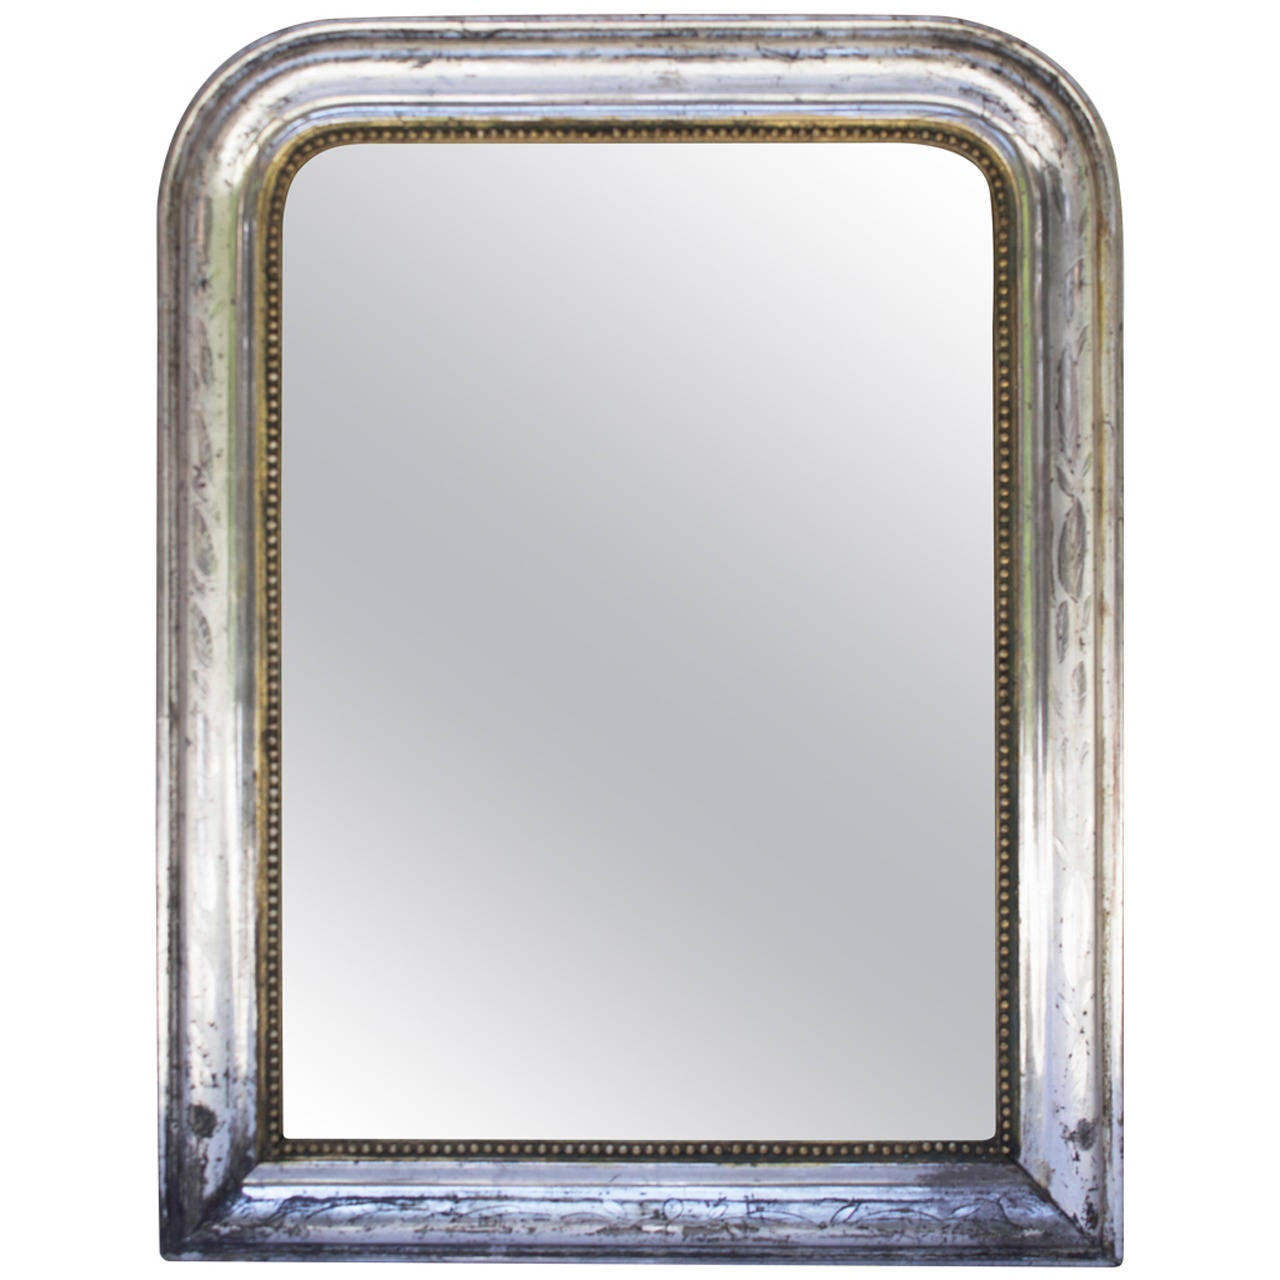 Louis philippe period silver gilt mirror at 1stdibs for What is a gilt mirror